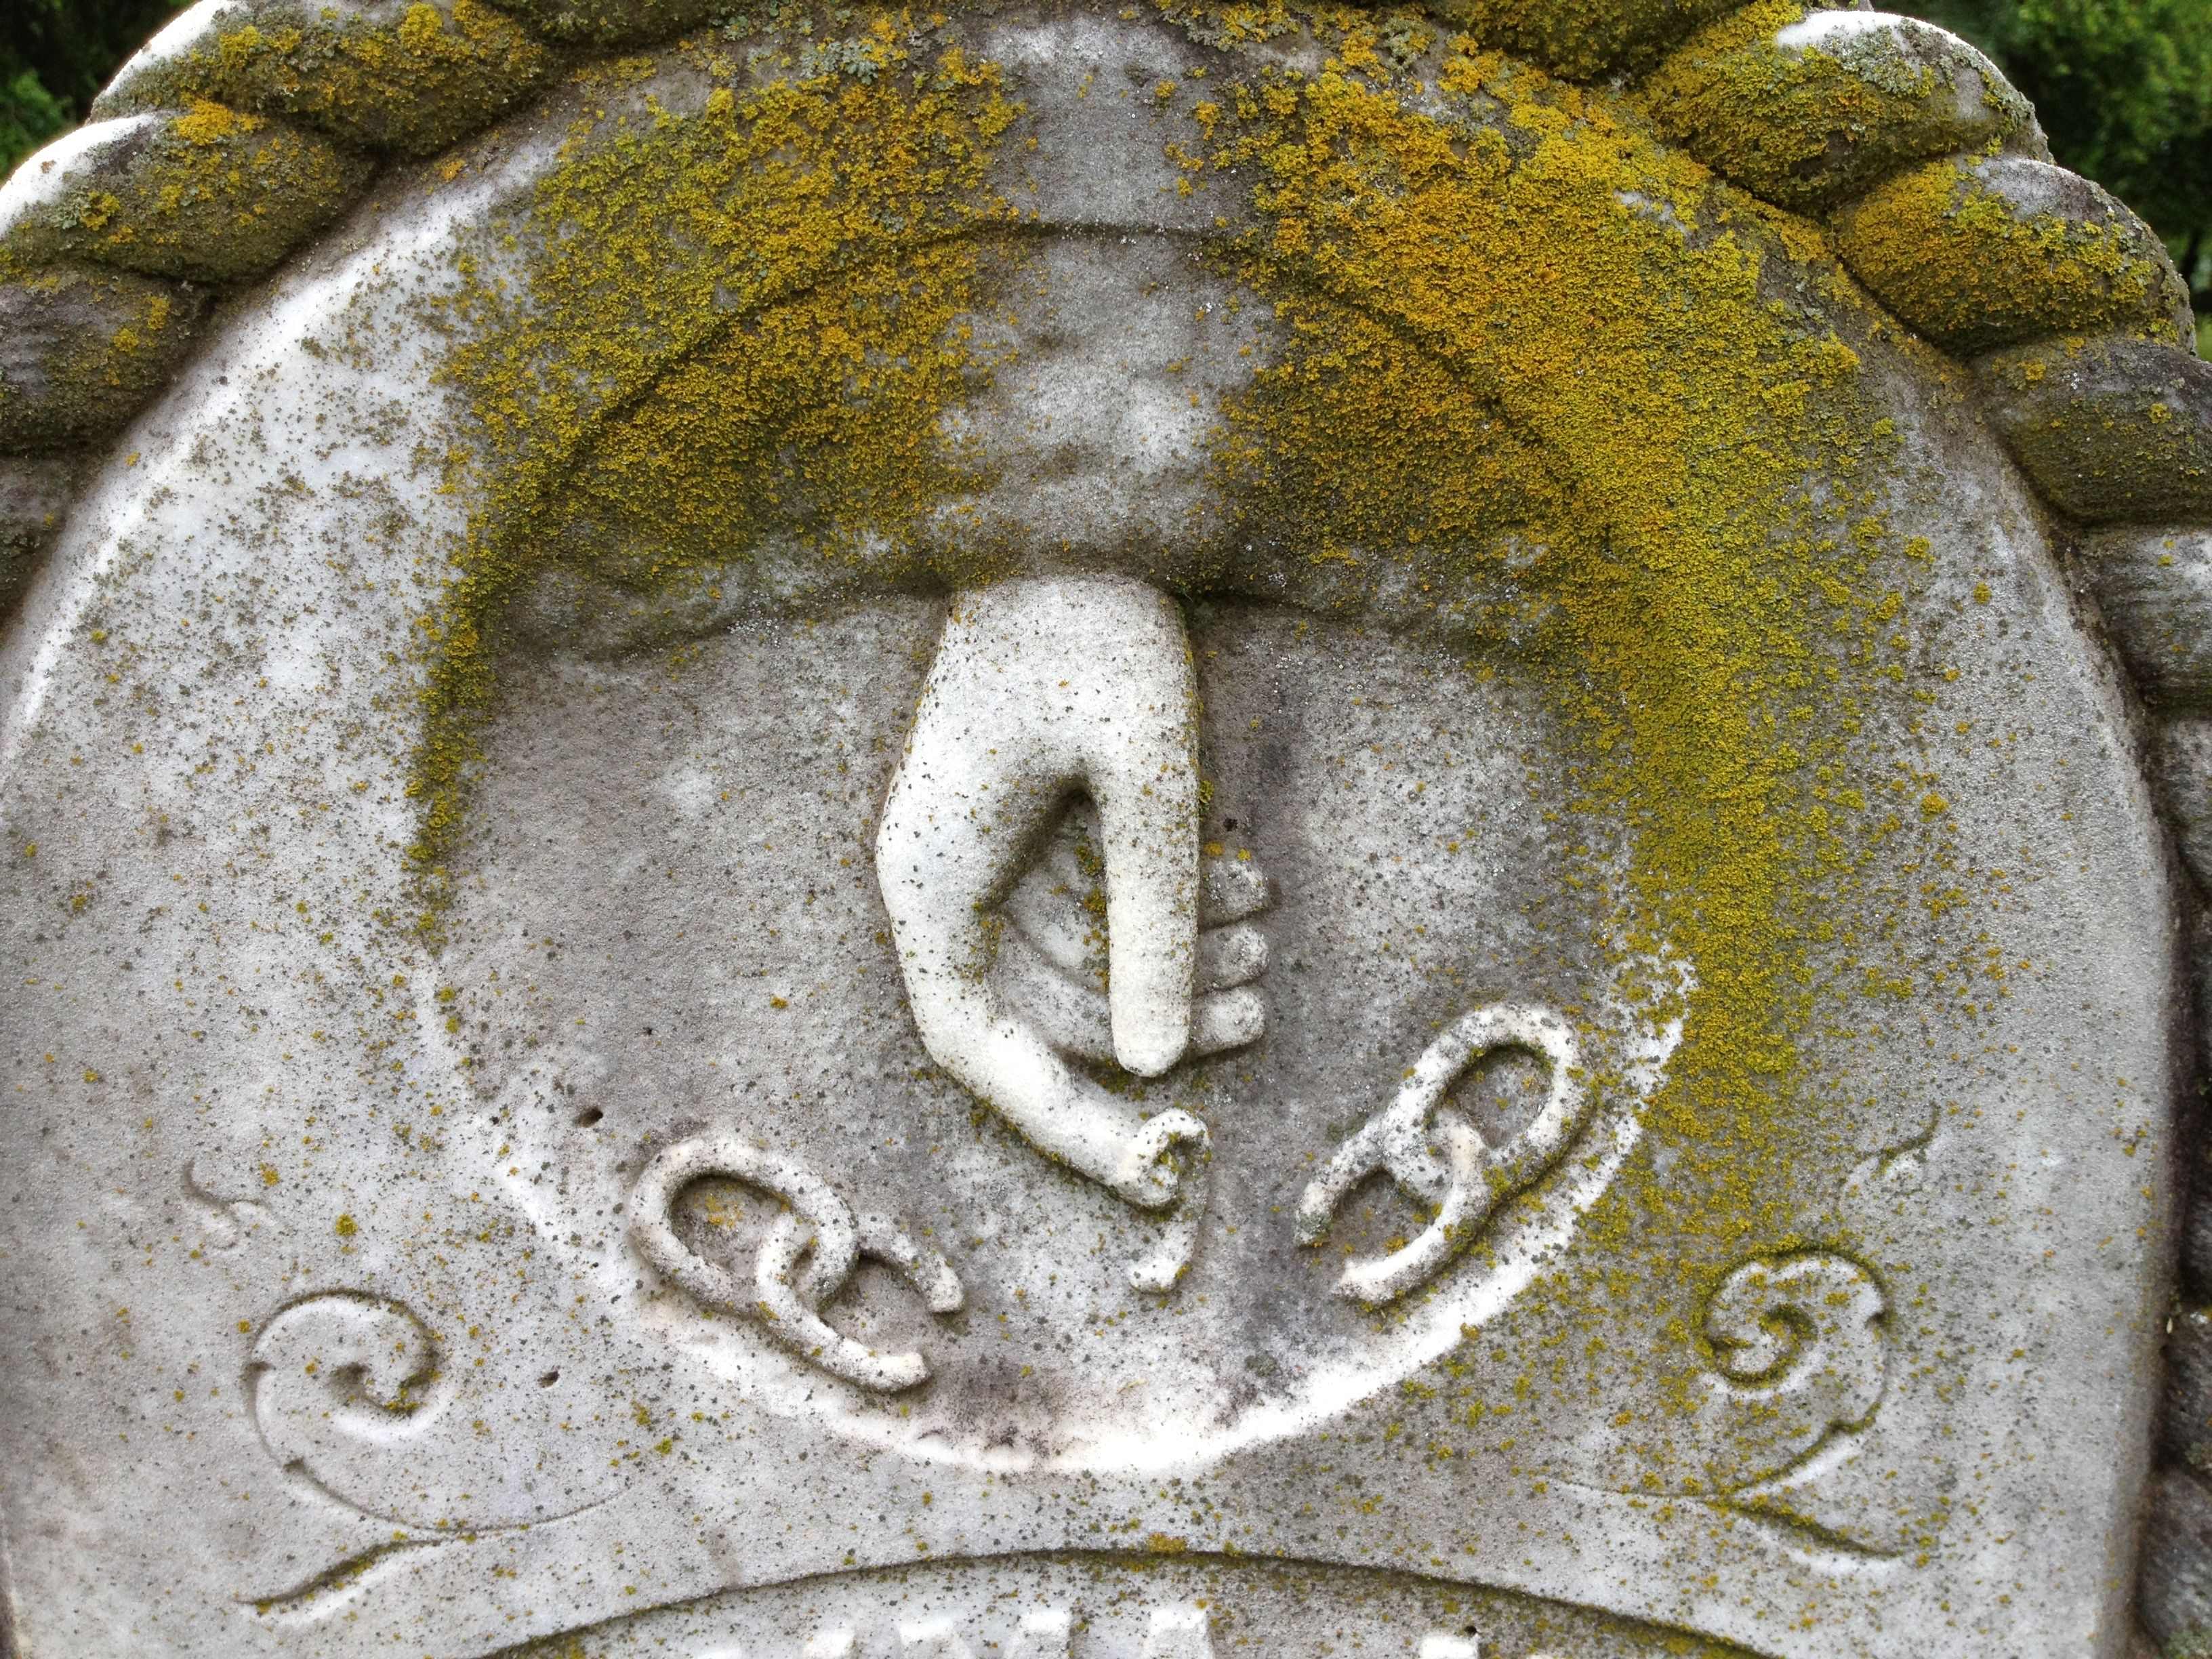 The Broken Chain Is A Common Religious Headstone Symbol From The